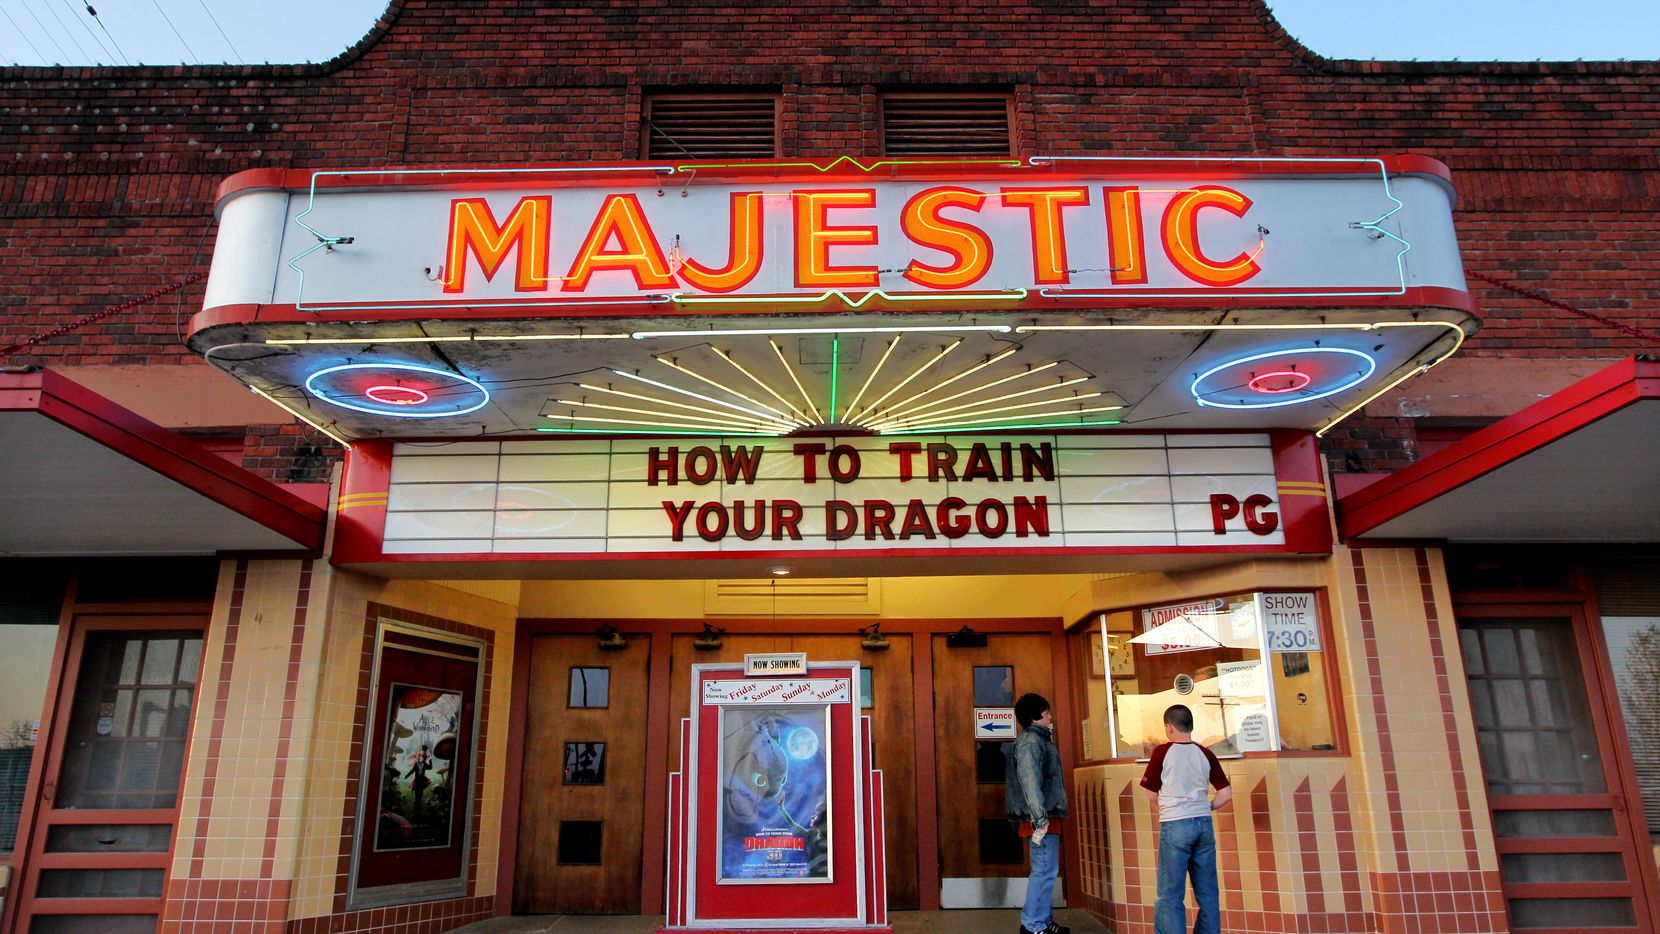 The Majestic Theatre in Wills Point, Texas, is believed to be the oldest continuously-operating, family-owned movie theater in the country.  Photographed March 27, 2010.